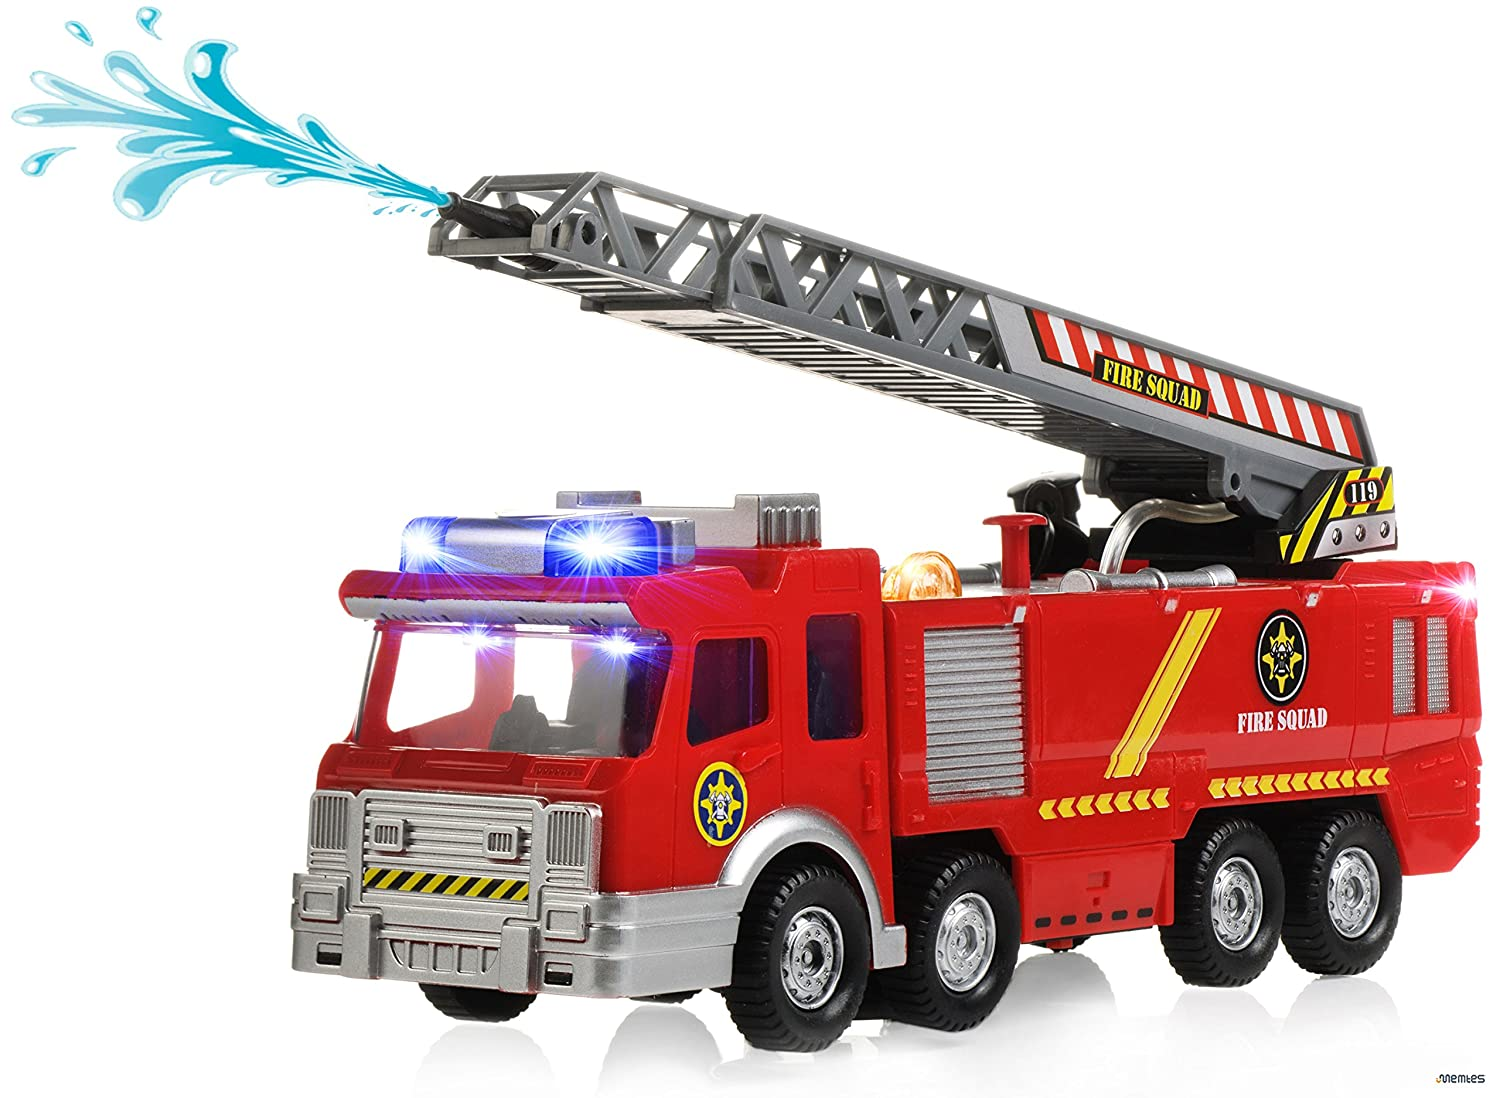 amazon com memtes electric fire truck toy with lights and sirens